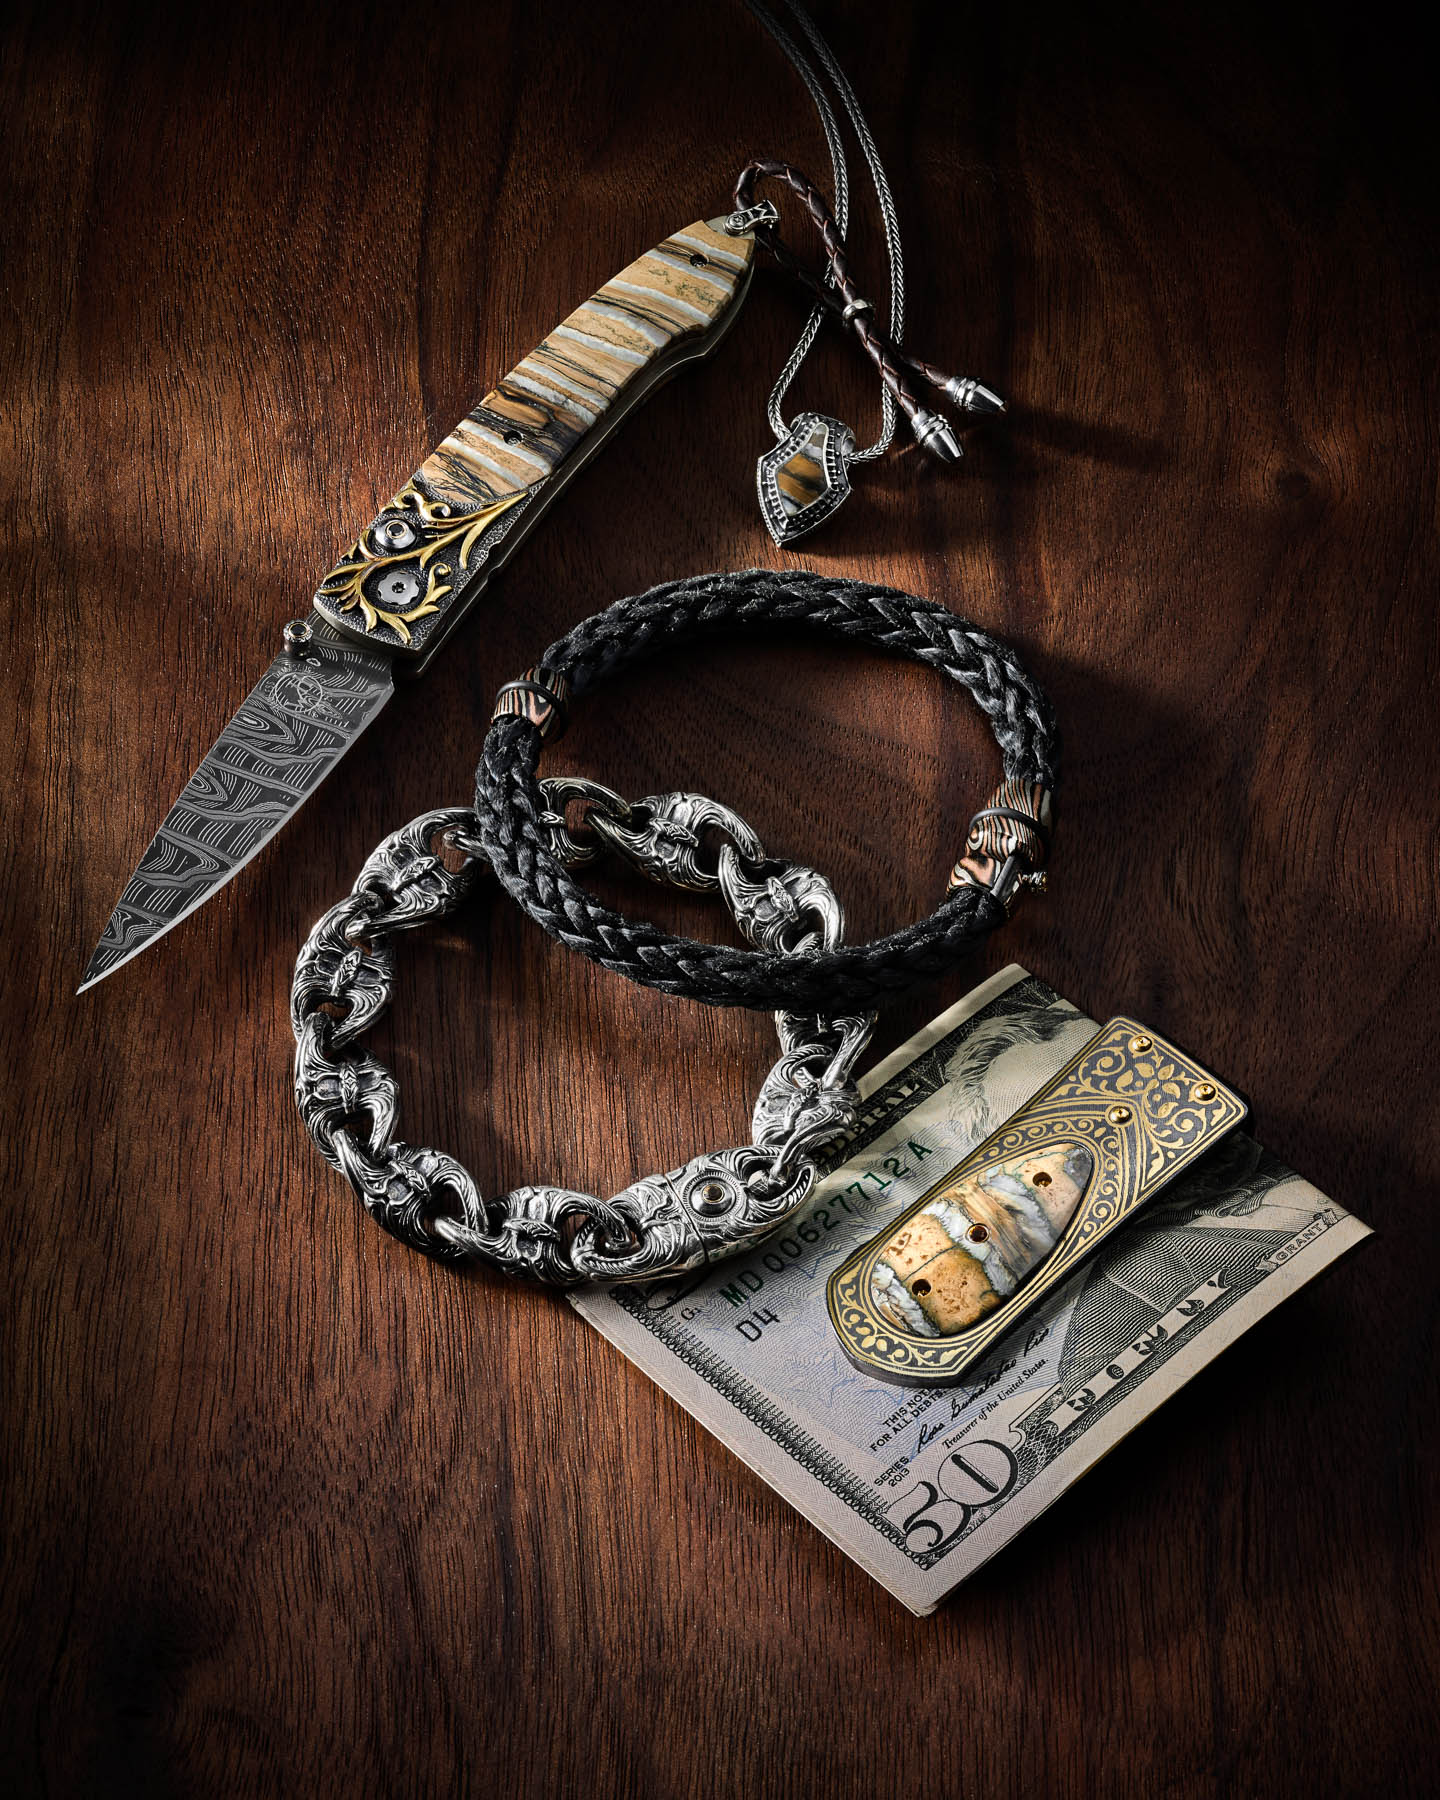 William Henry money clip, knife, and necklace on walnut by Steve Temple Photography